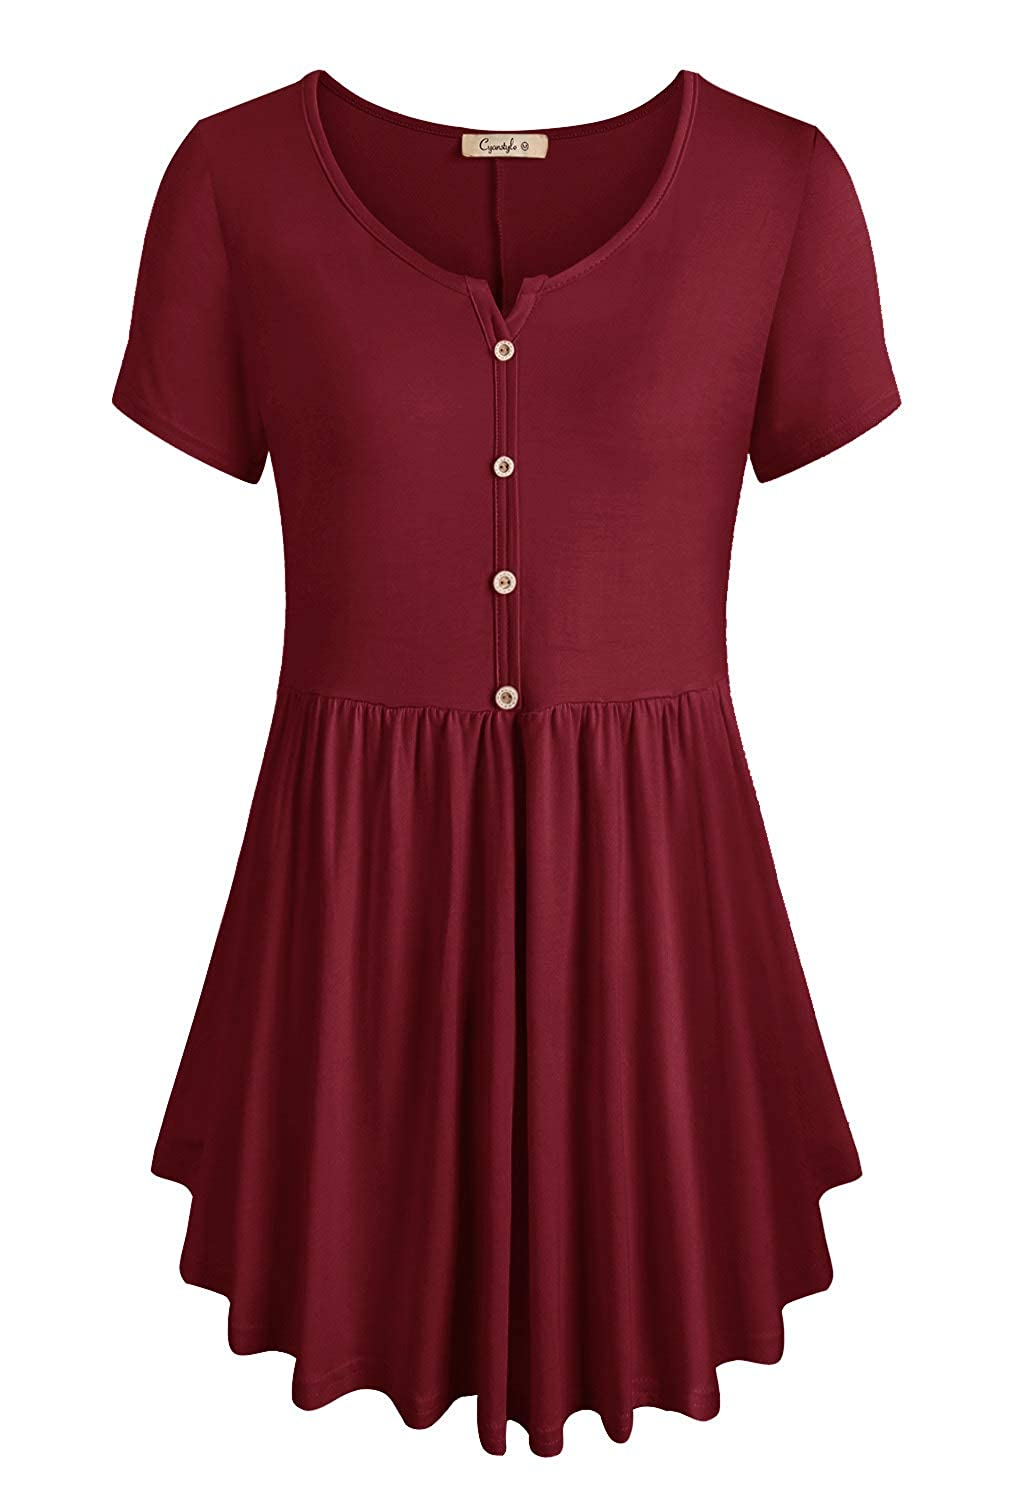 Burgundy Cyanstyle Women's V Neck Short Sleeve Henley Pleated Casual Tunic Blouse Tops